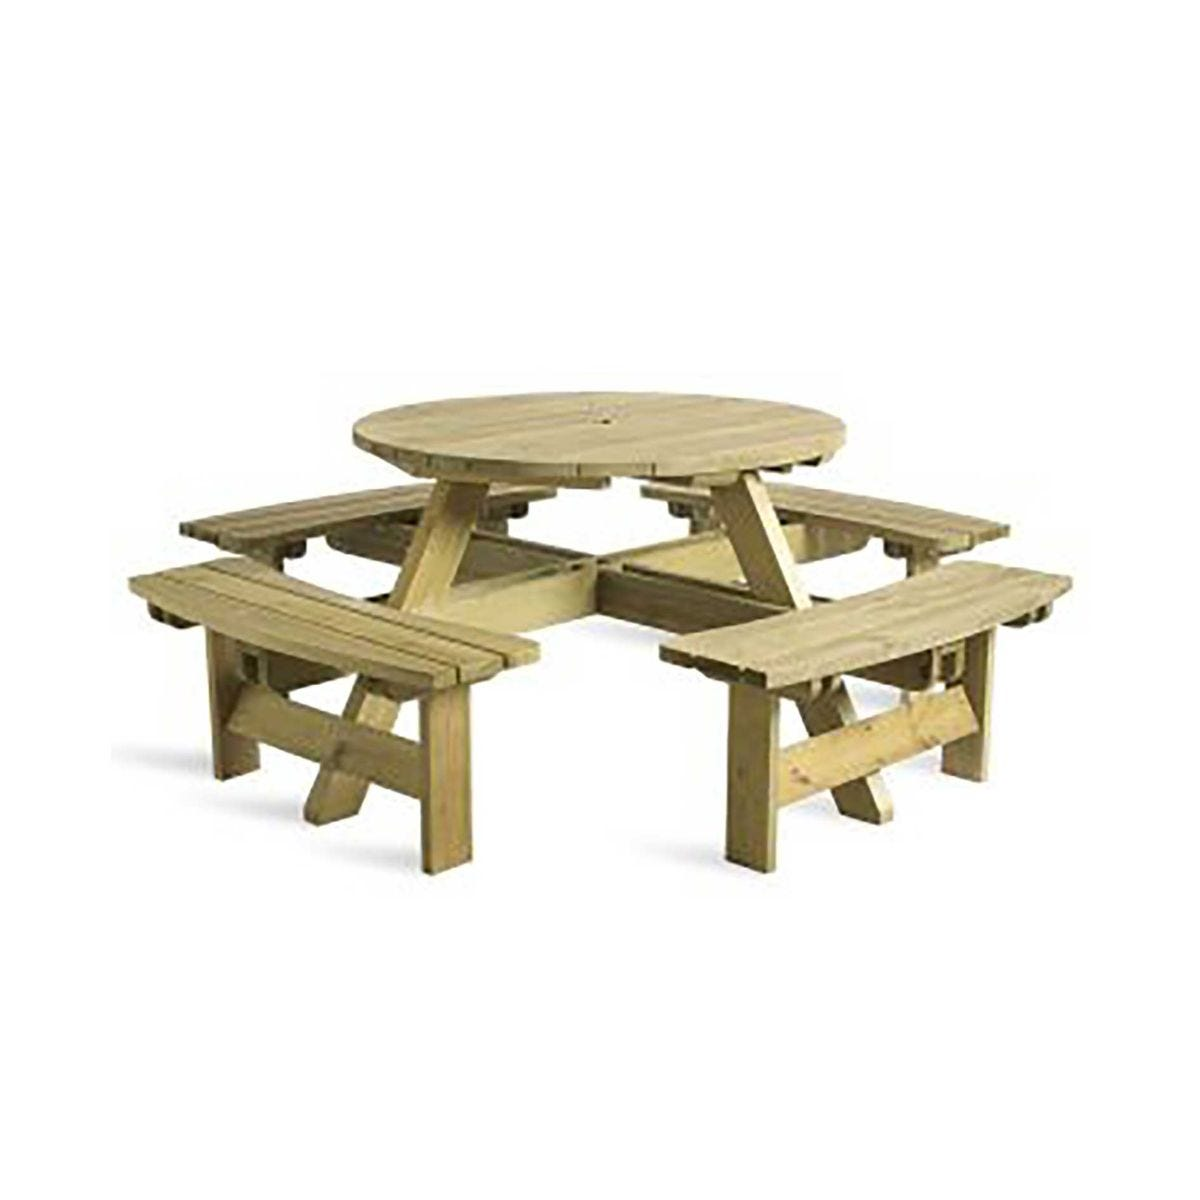 King Round Picnic Table 8 Seater